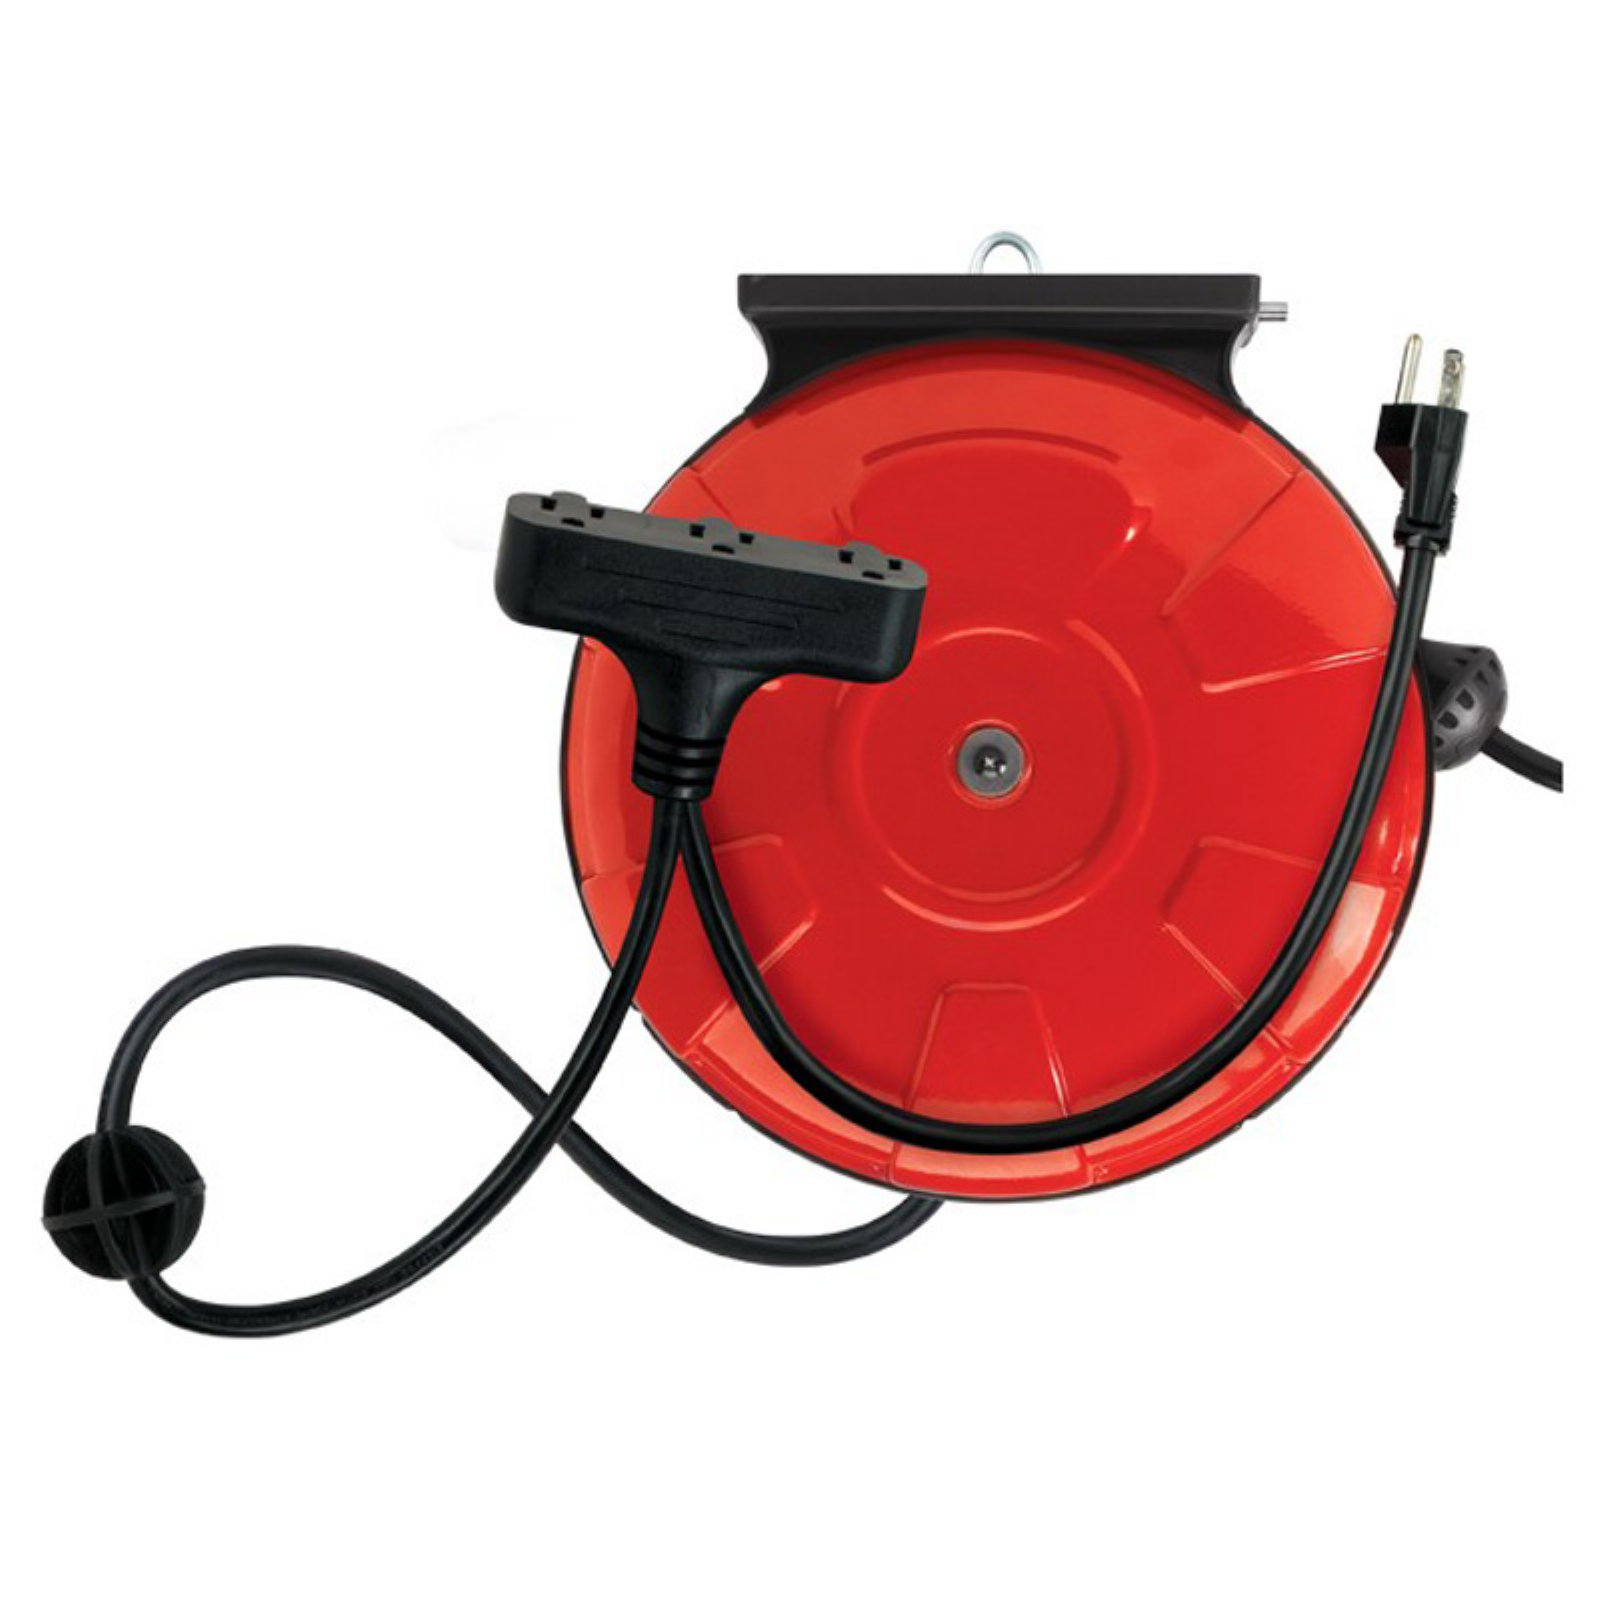 Designers Edge 48006 14/3-Gauge 30' Cord Reel Power Station with 3 Grounded Outlets